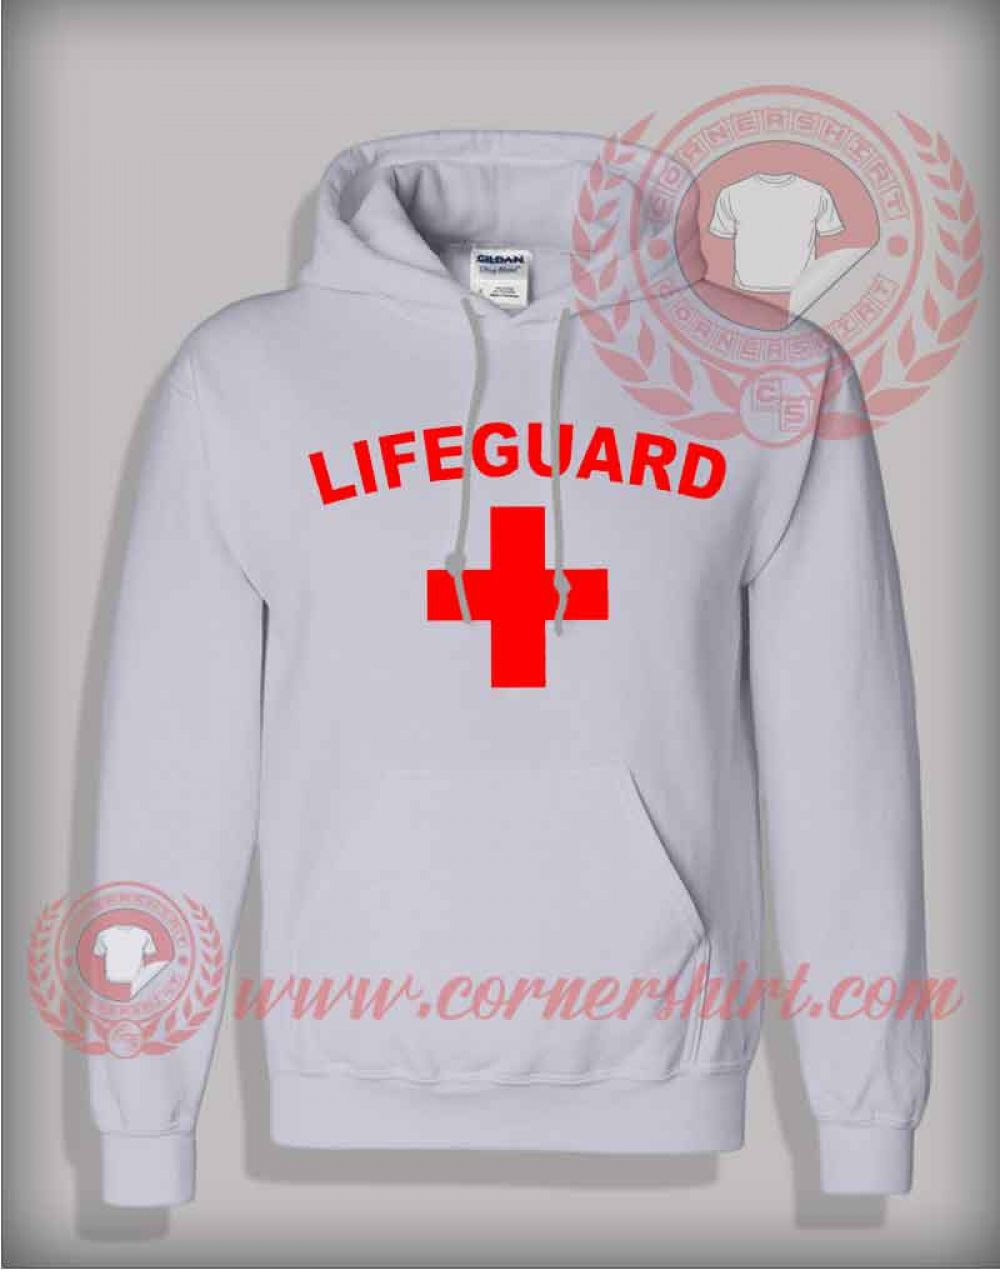 fe67b51be0a Lifeguard Logo Pullover Hoodie on sale By cornershirt.com in 2018 ...